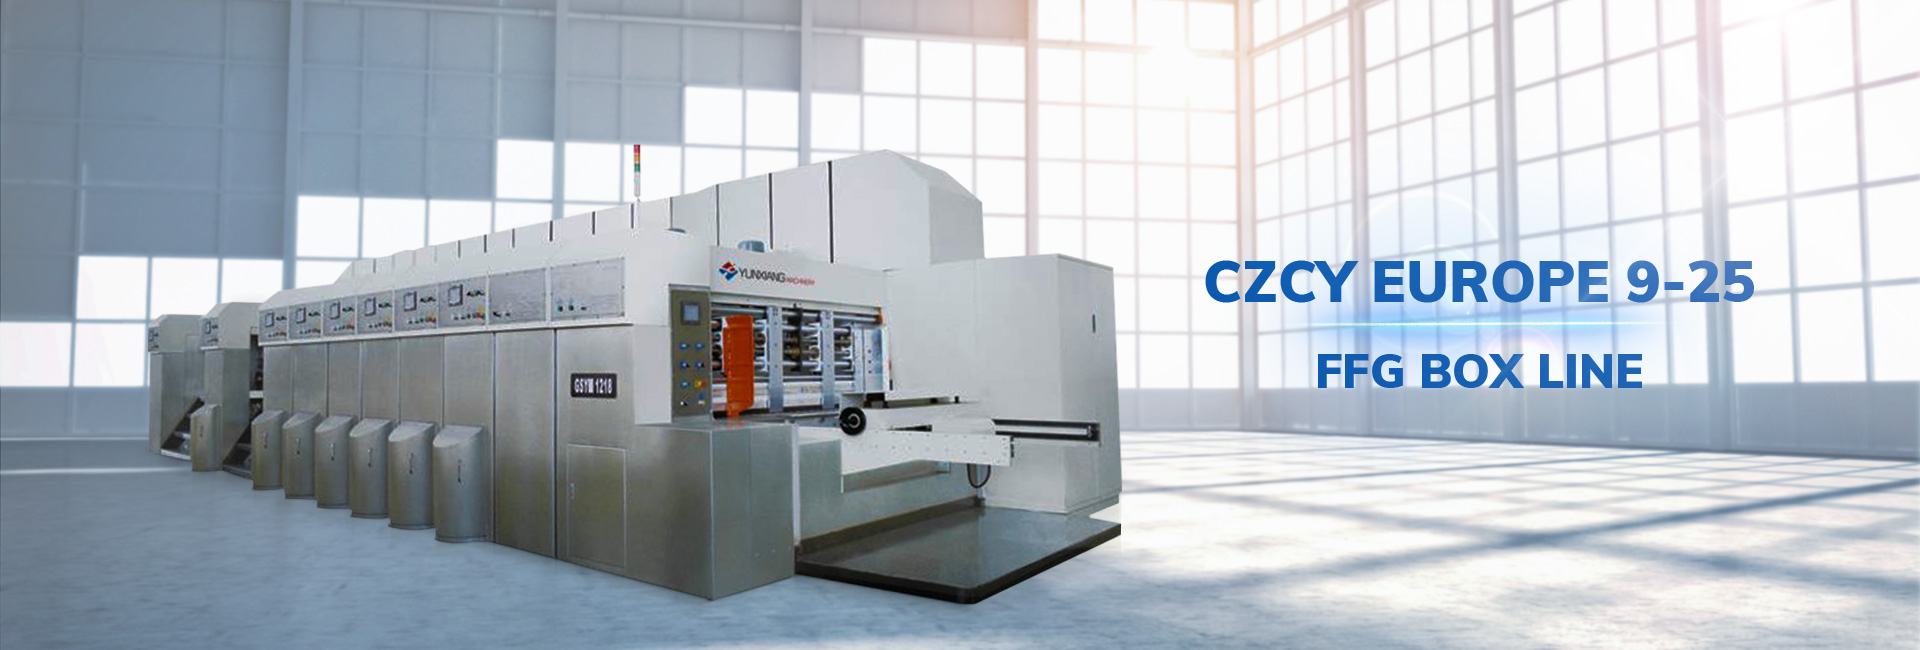 Co Innealra Cangzhou Chengyi Carton, Ltd